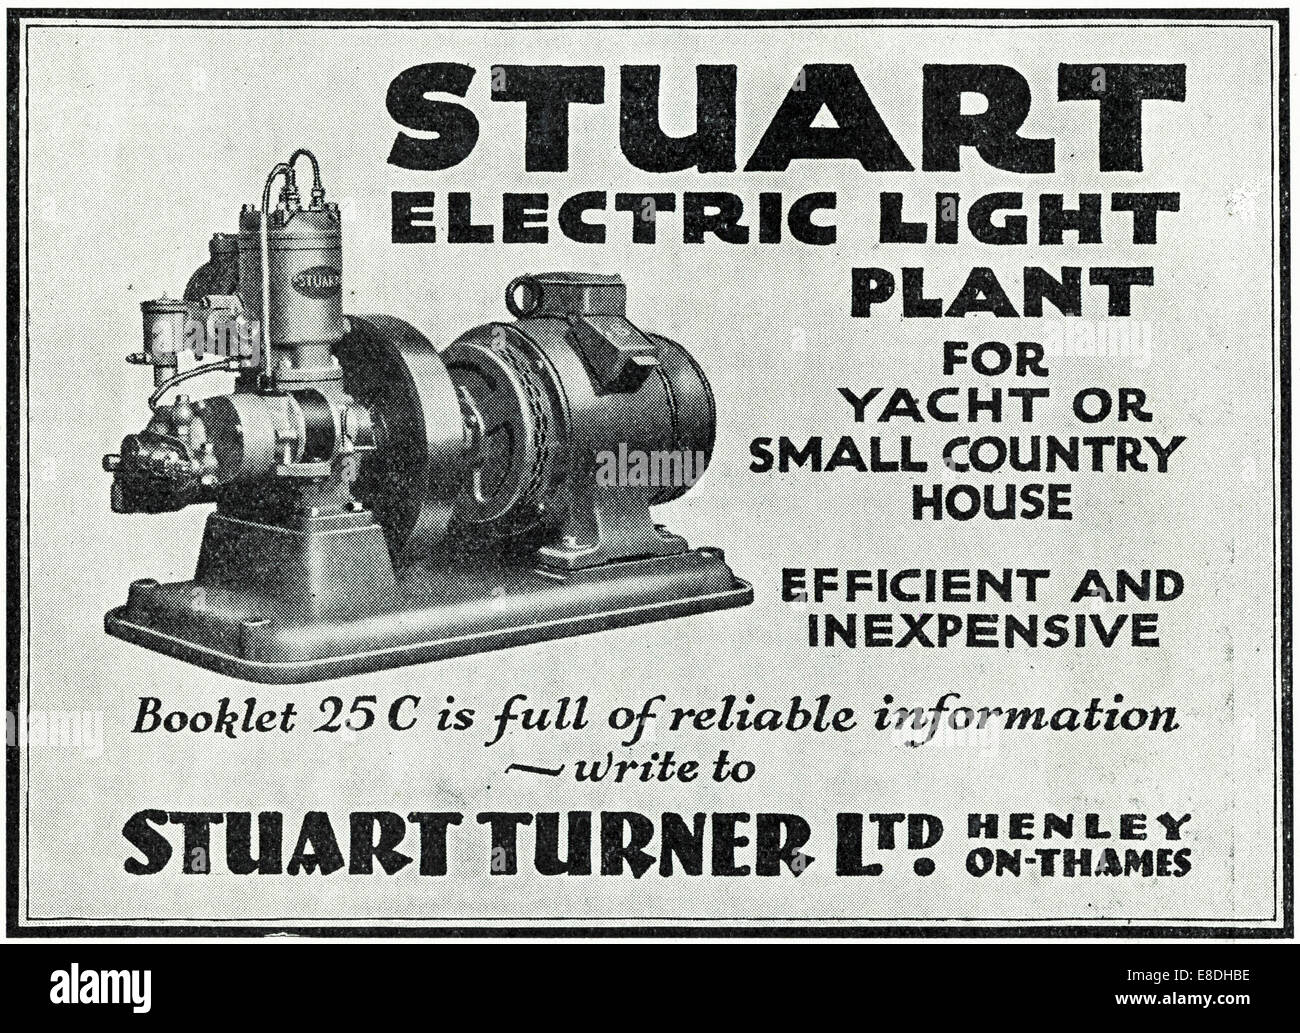 1920s advertisement for electric light generators by STUART TURNER LTD of Henley-on-Thames in English magazine dated Stock Photo